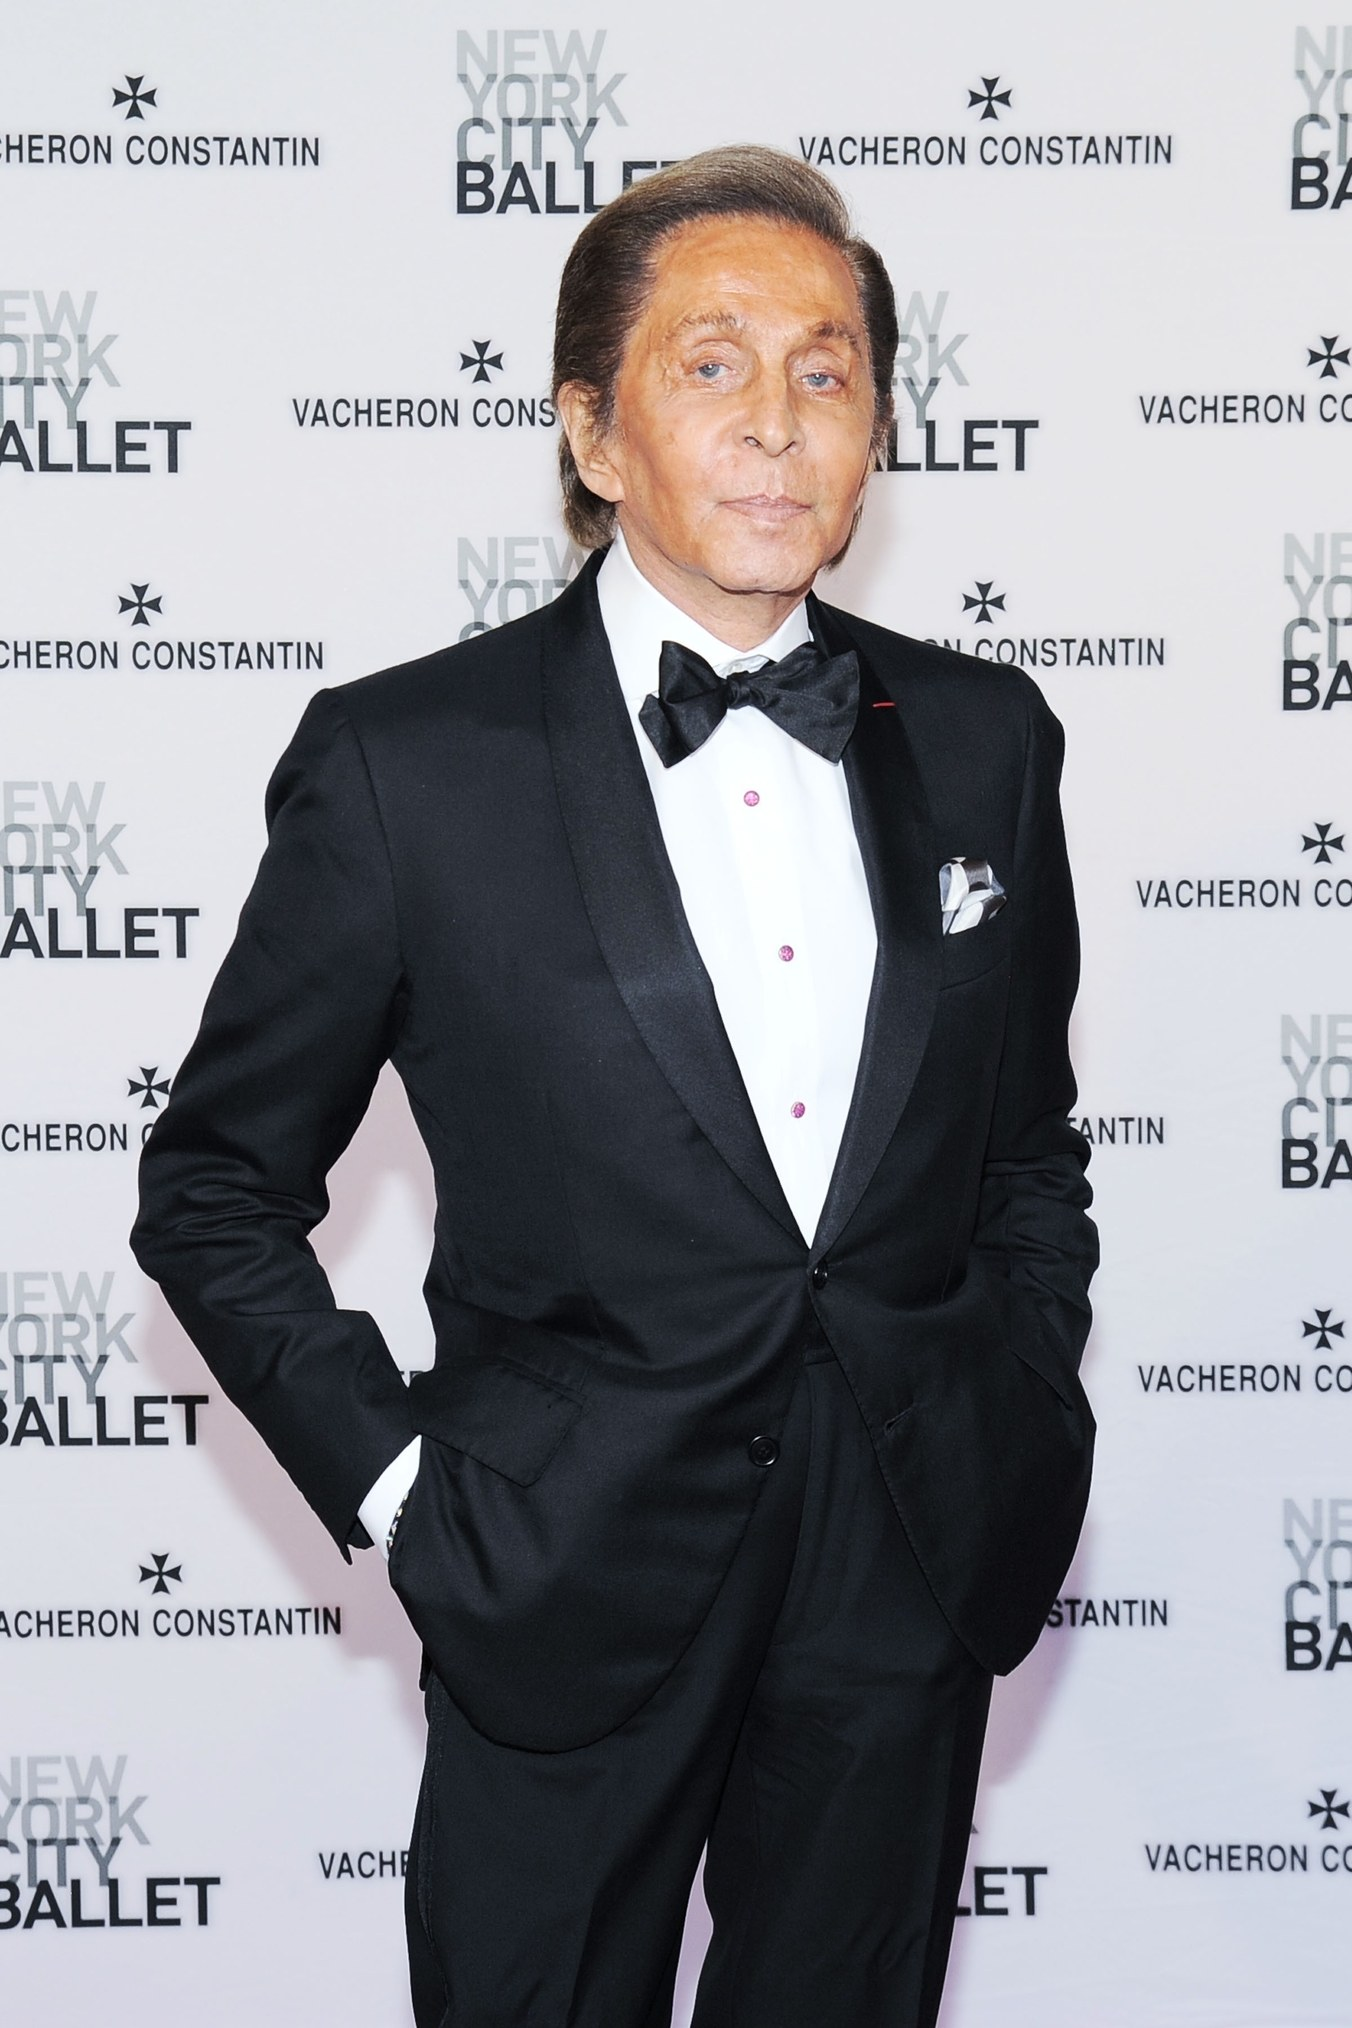 An Evening With The Ballet: NYC Ballet 2015 Spring Gala - Mass DJ